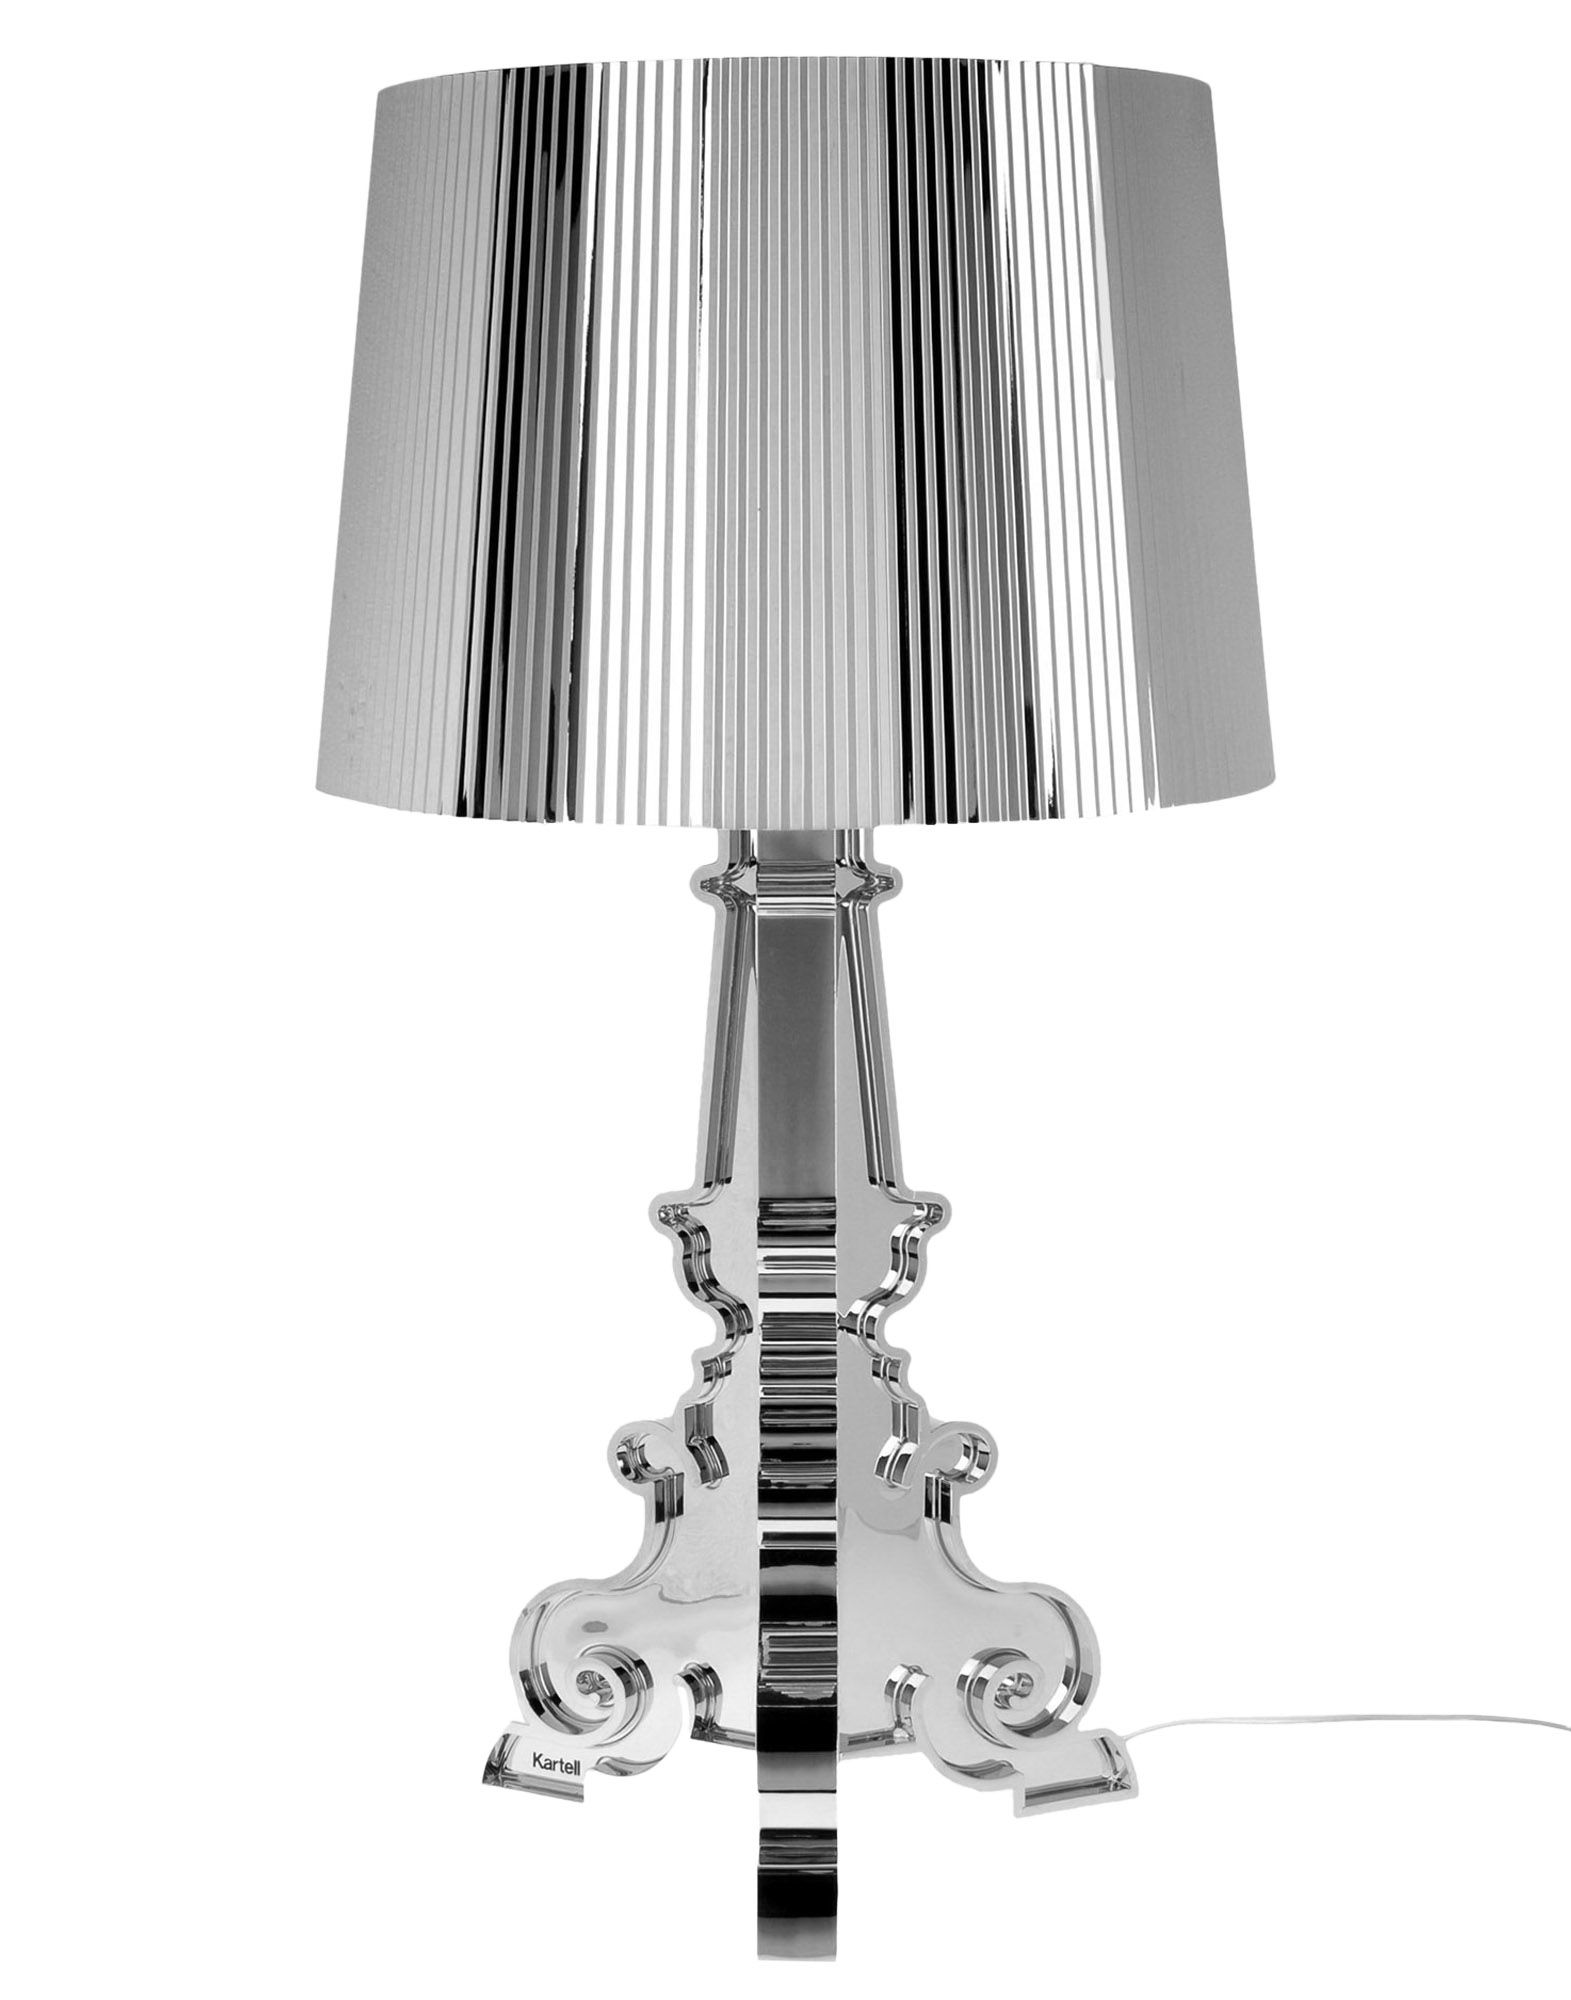 Lamp Kartell Kartell Table Lamp Lighting Yoox Com